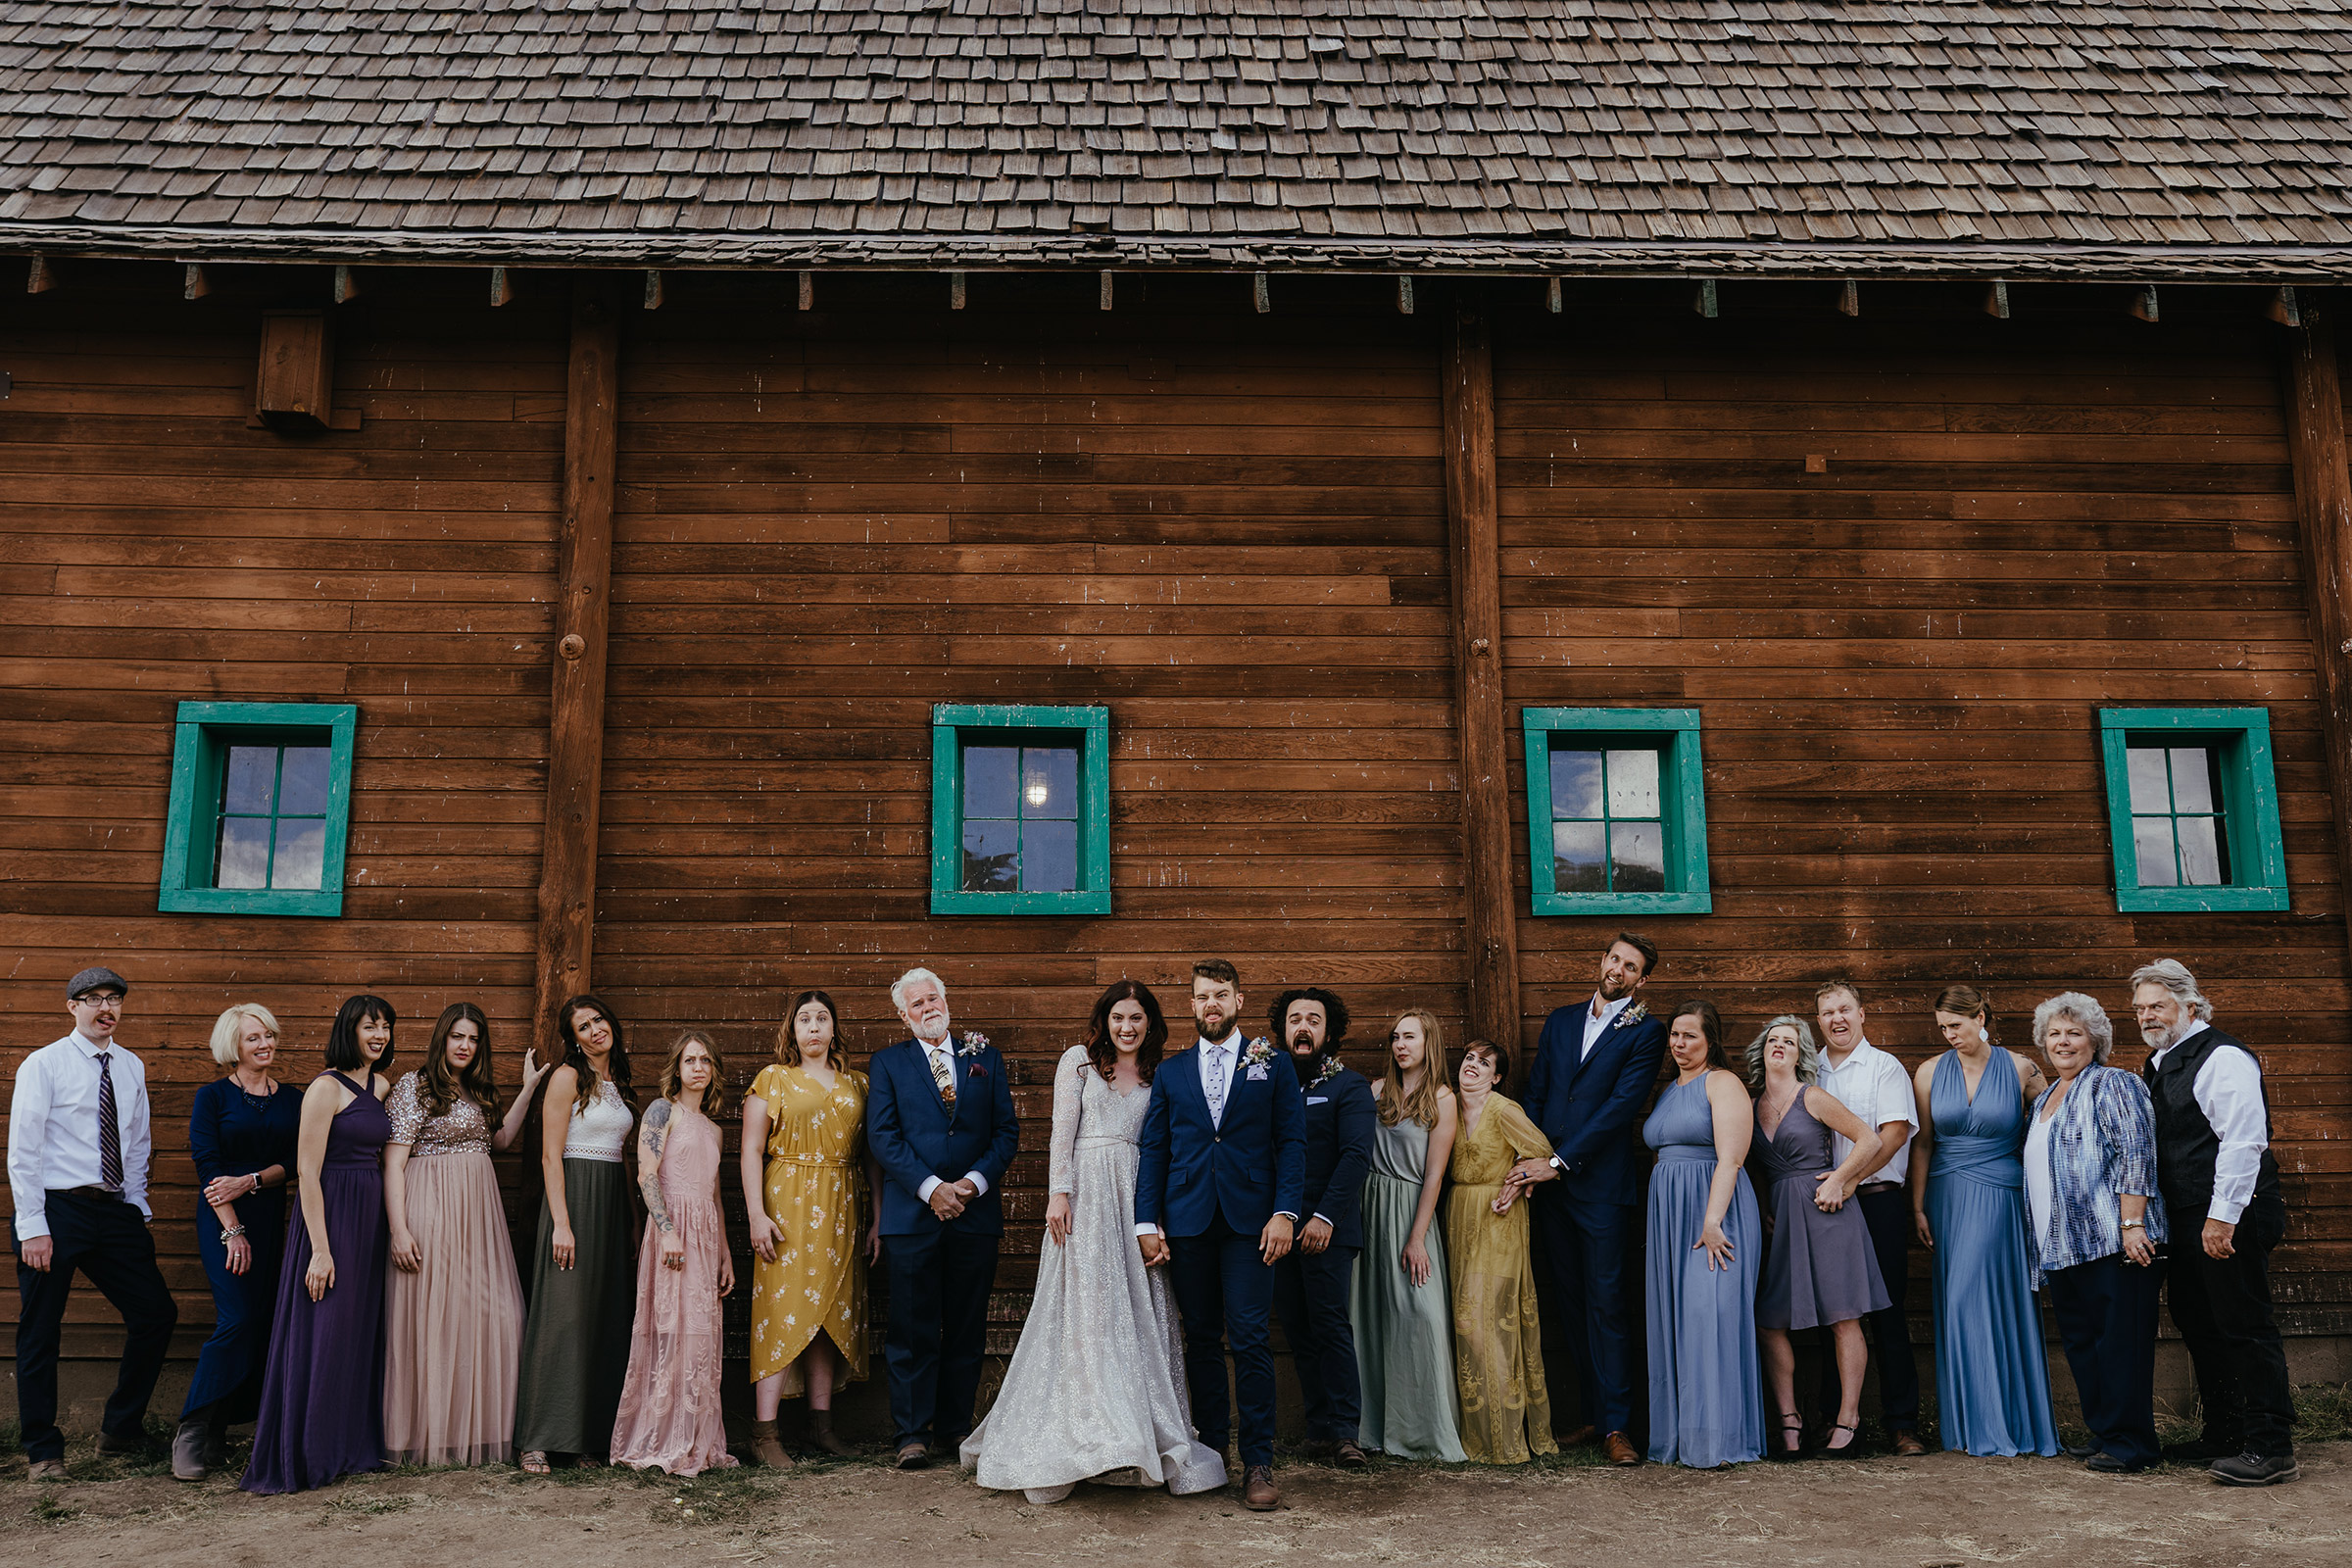 wedding-party-standing-in-line-double-a-barn-grand-lake-colorado-raelyn-ramey-photography-305.jpg